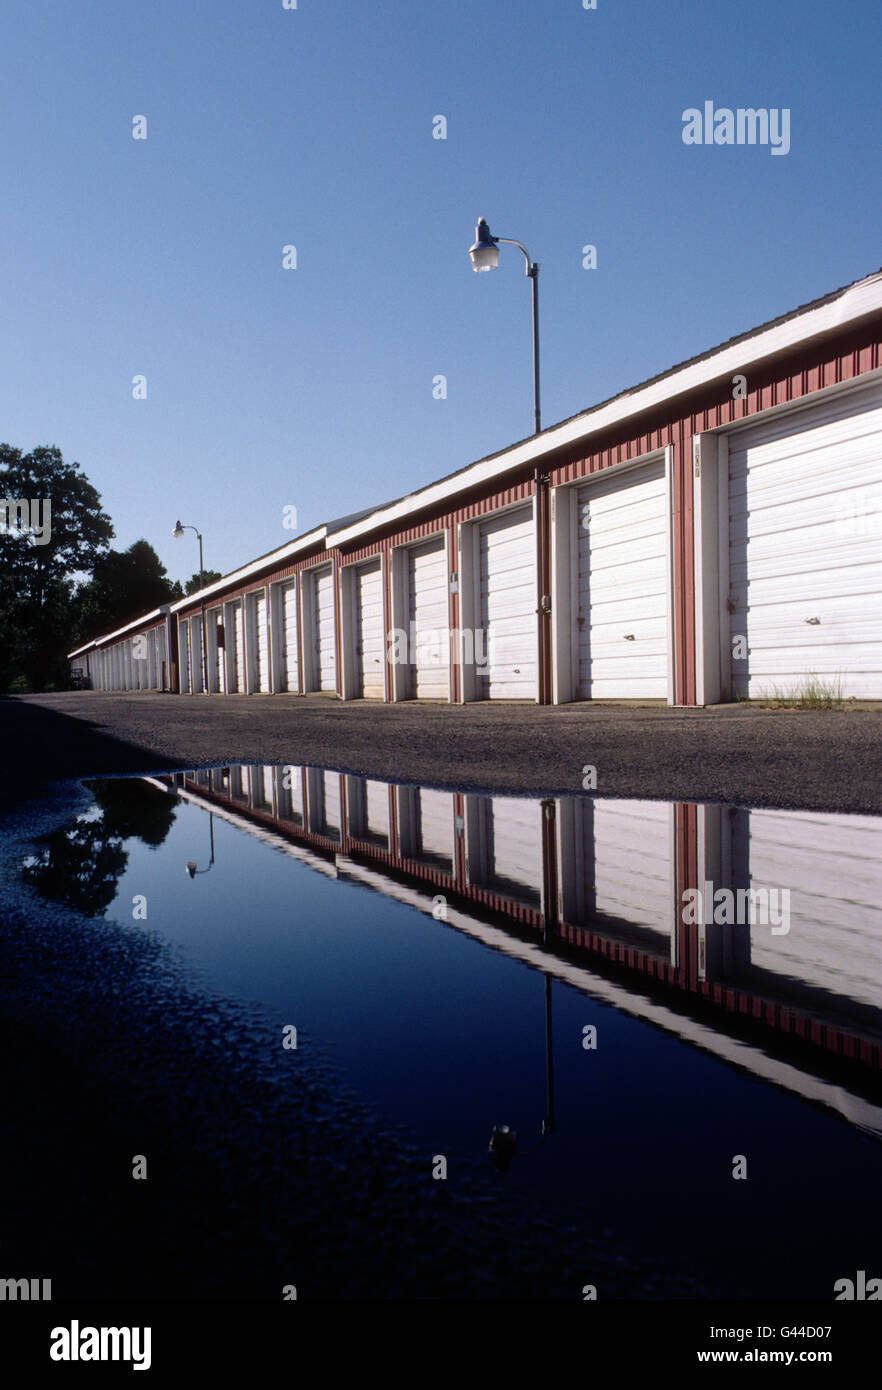 Daytime view of garage like rental storage units lined up in a row - Stock Image